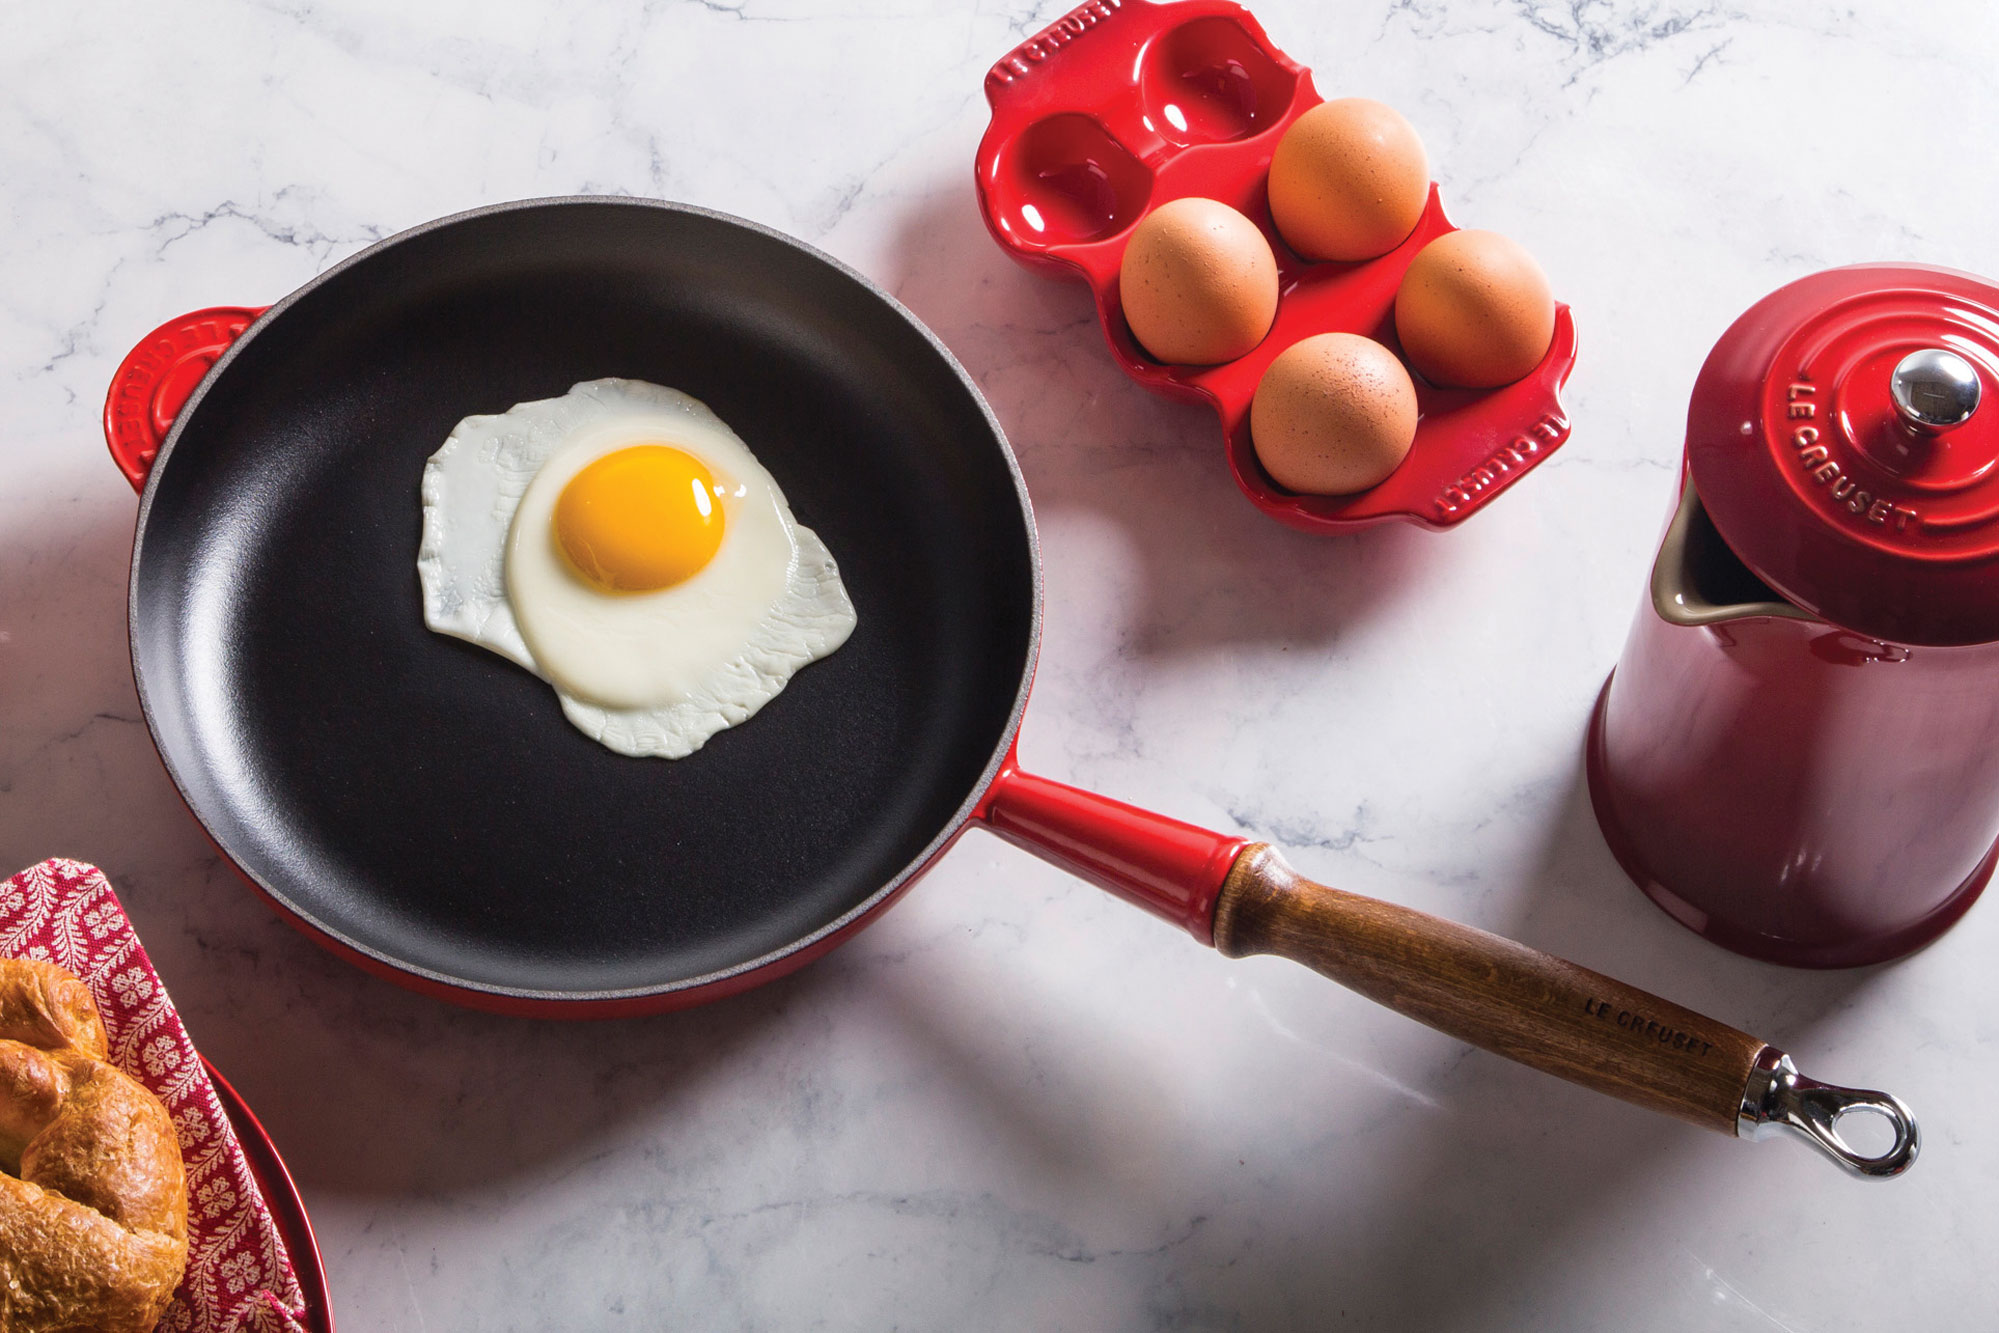 Le Creuset Heritage Cast Iron Fry Pan With Wood Handle 9